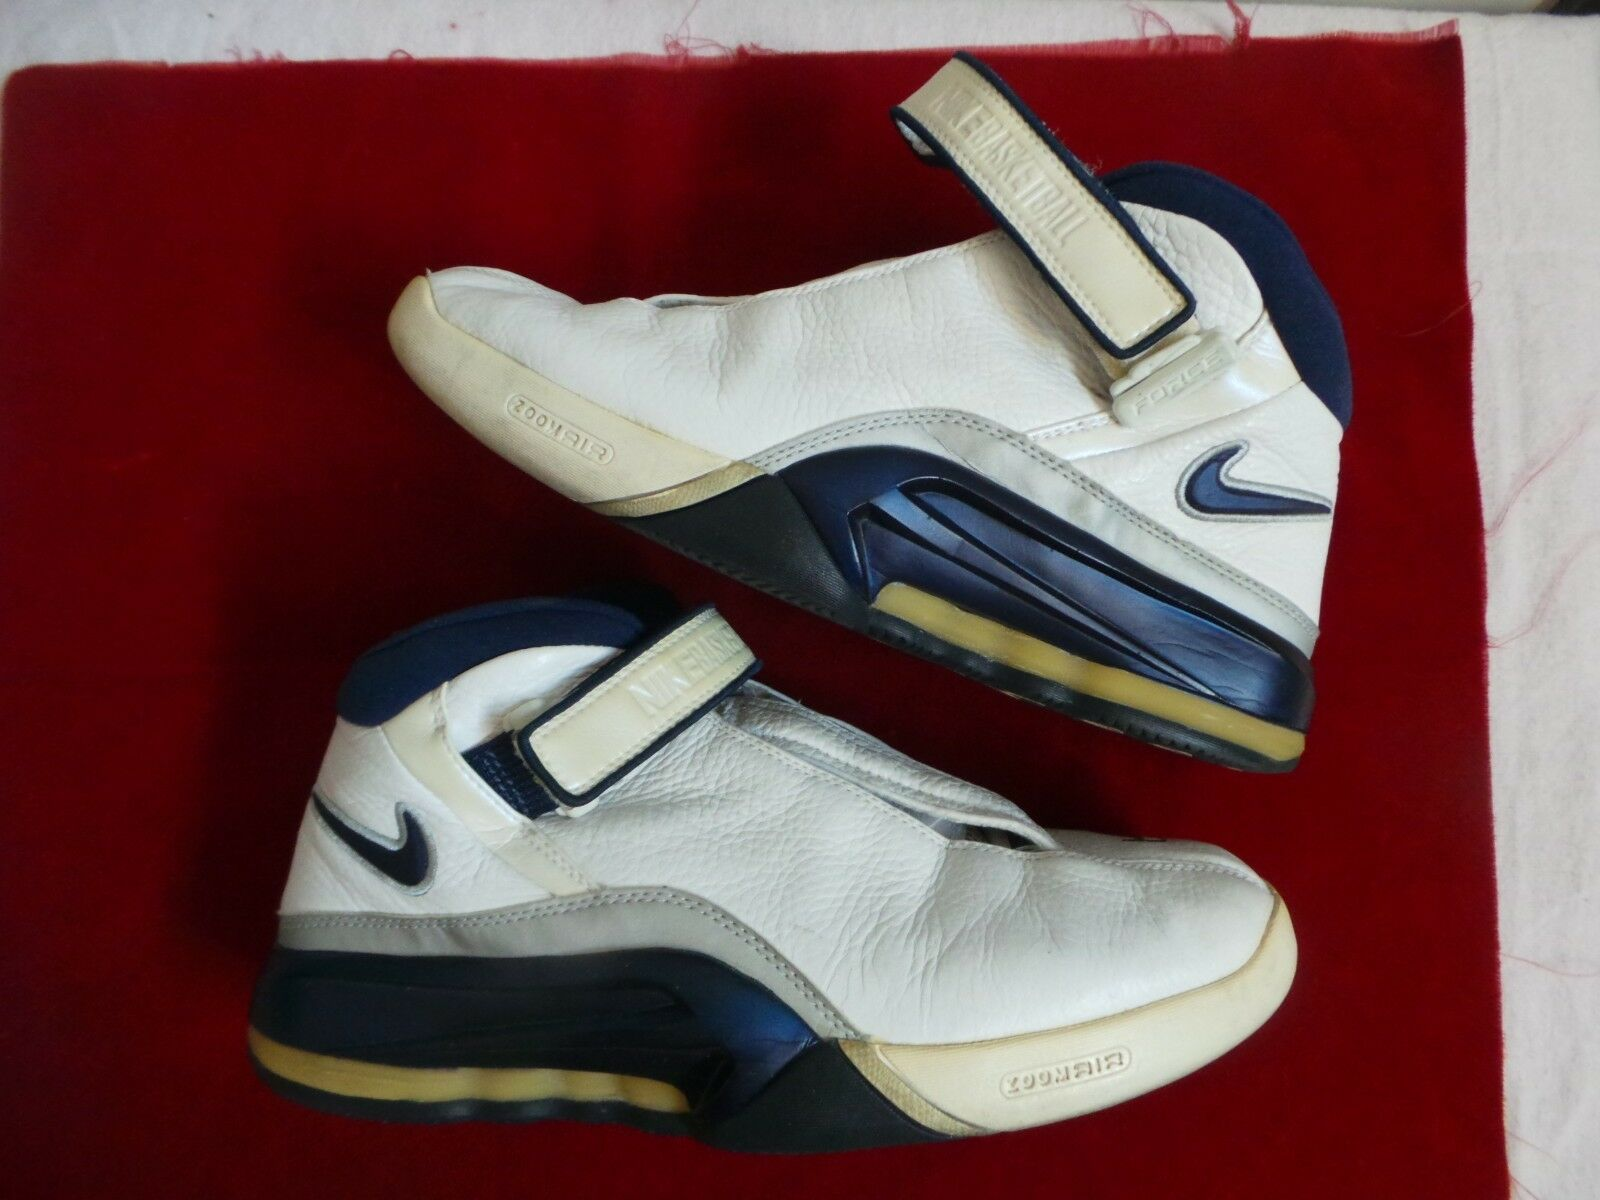 Nike Air Big Flyer Force Tuned Jason Williams White Chocolate 90s vintage 11.5